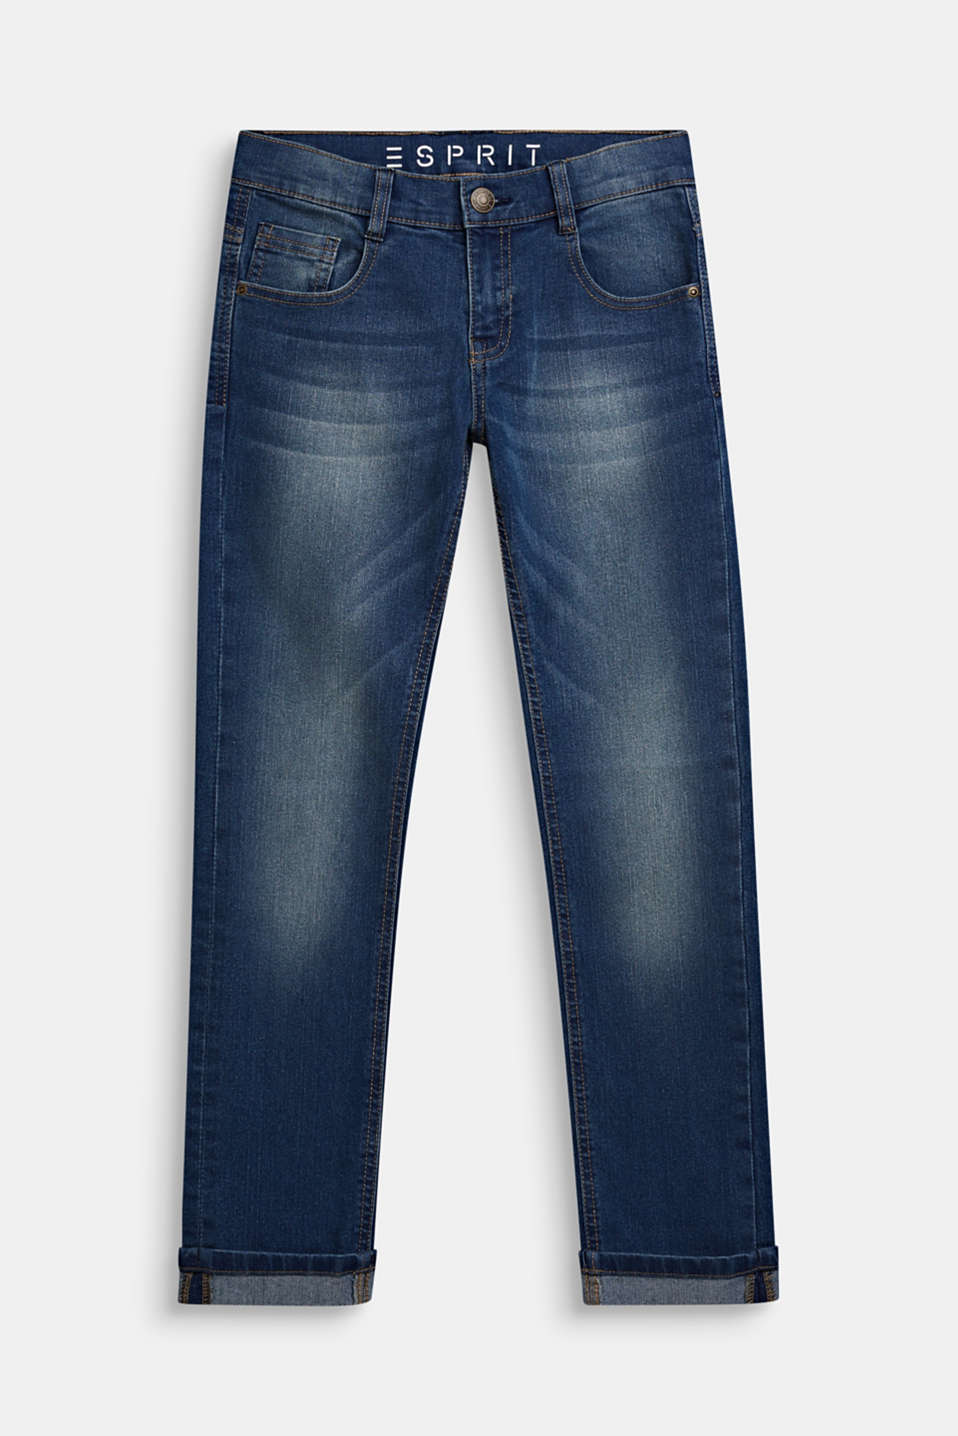 Jeans in a garment-washed look with turn-up hems, LCMEDIUM WASH DE, detail image number 0